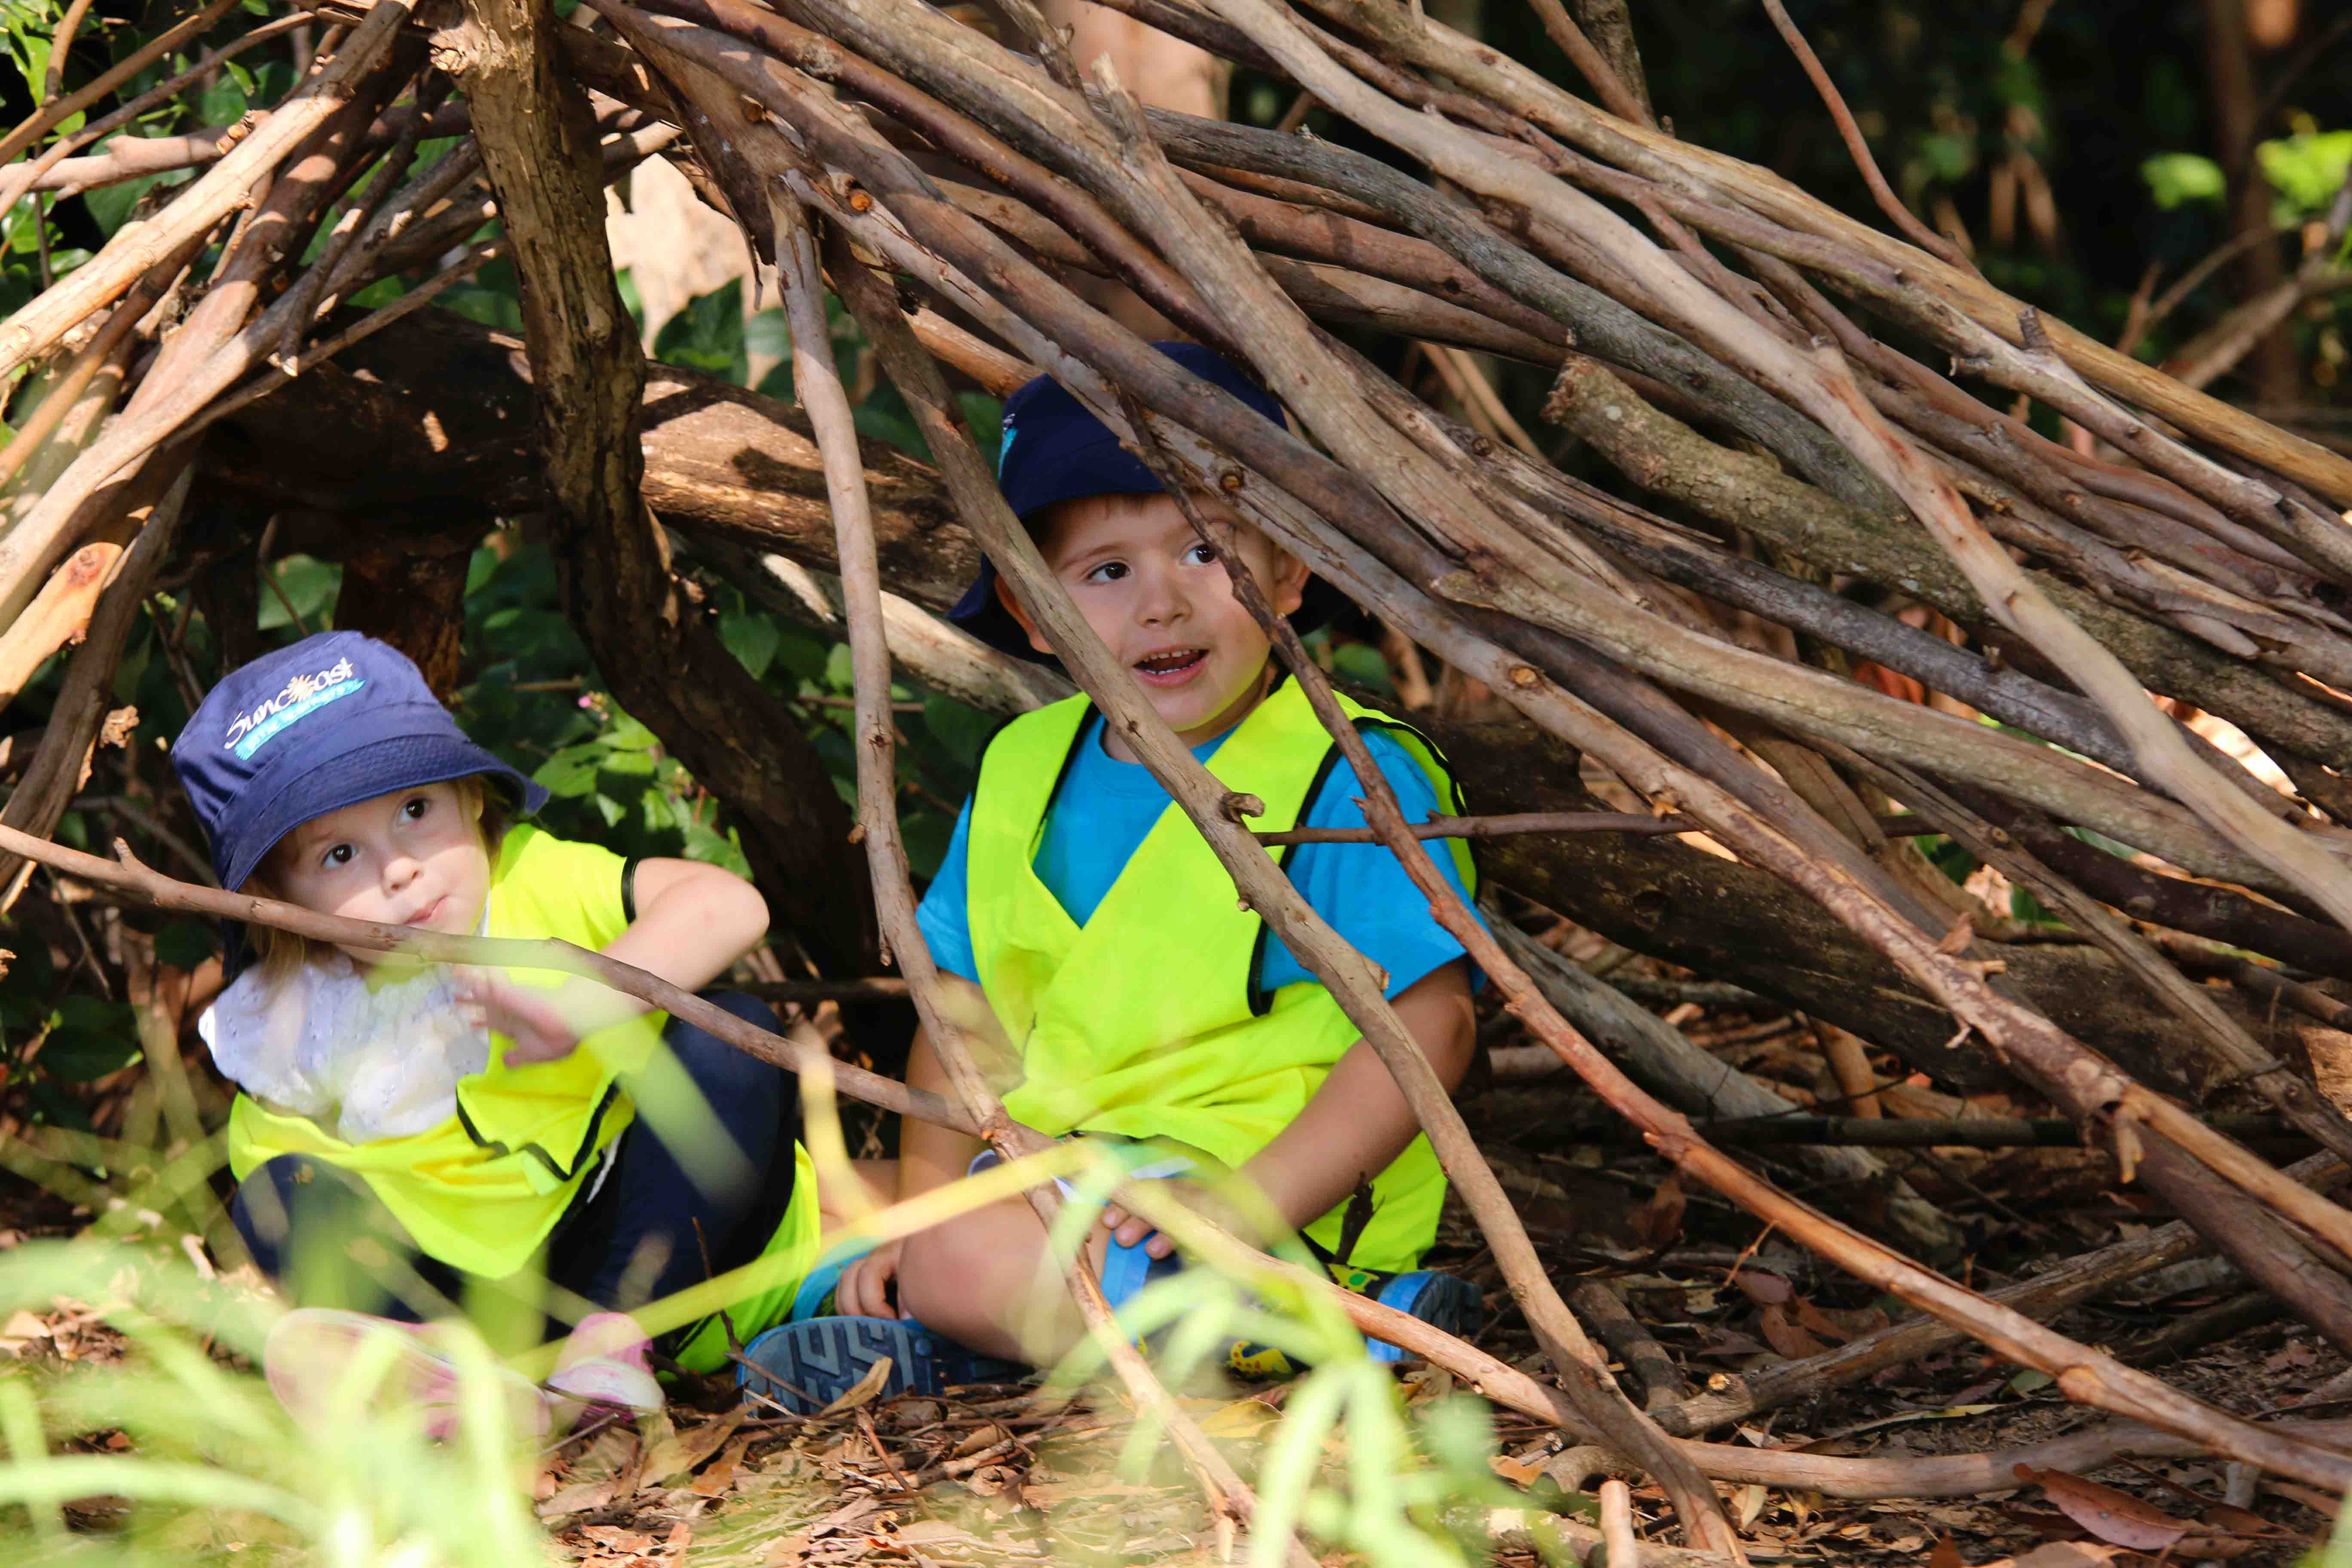 Kindy students playing in cubby house during Bush Kindy at Suncoasst Little Learners